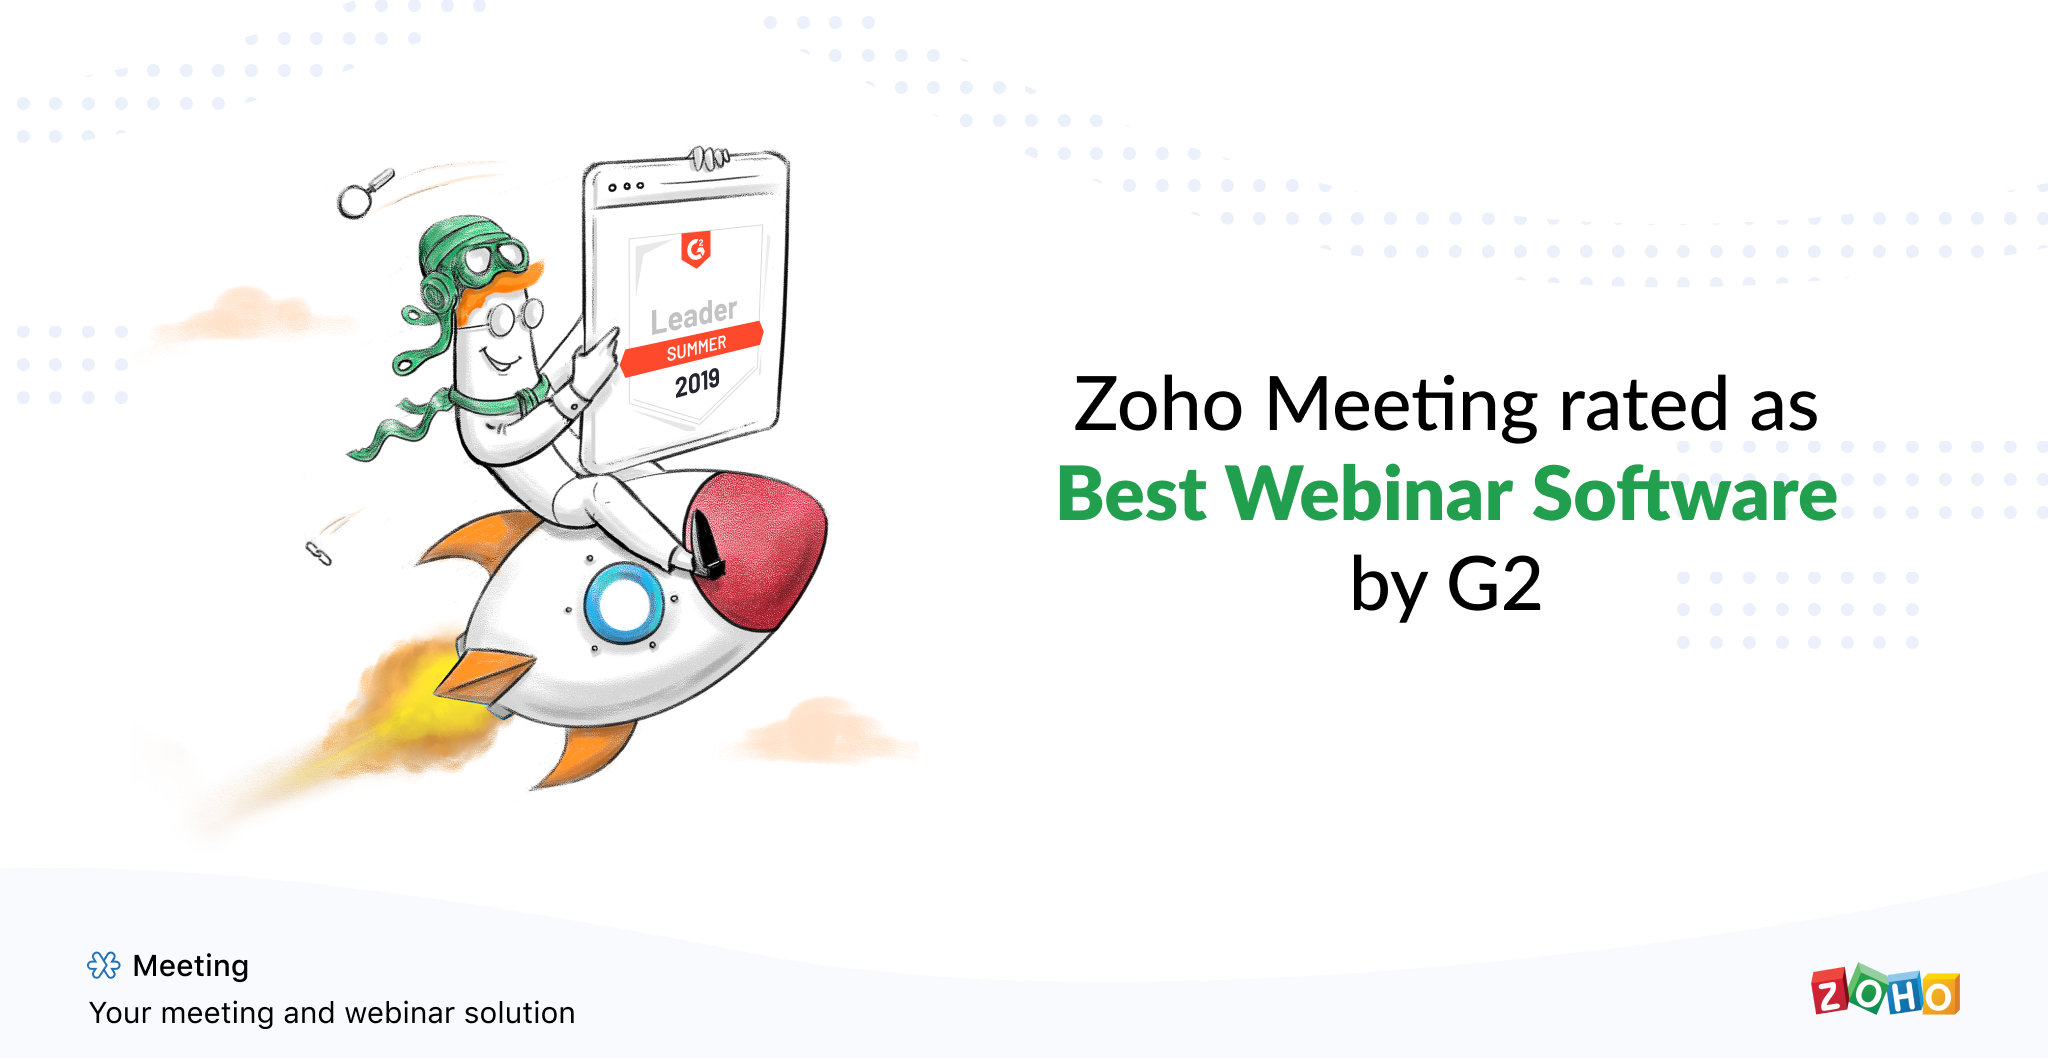 Zoho Meeting rated as Best Webinar Software by G2